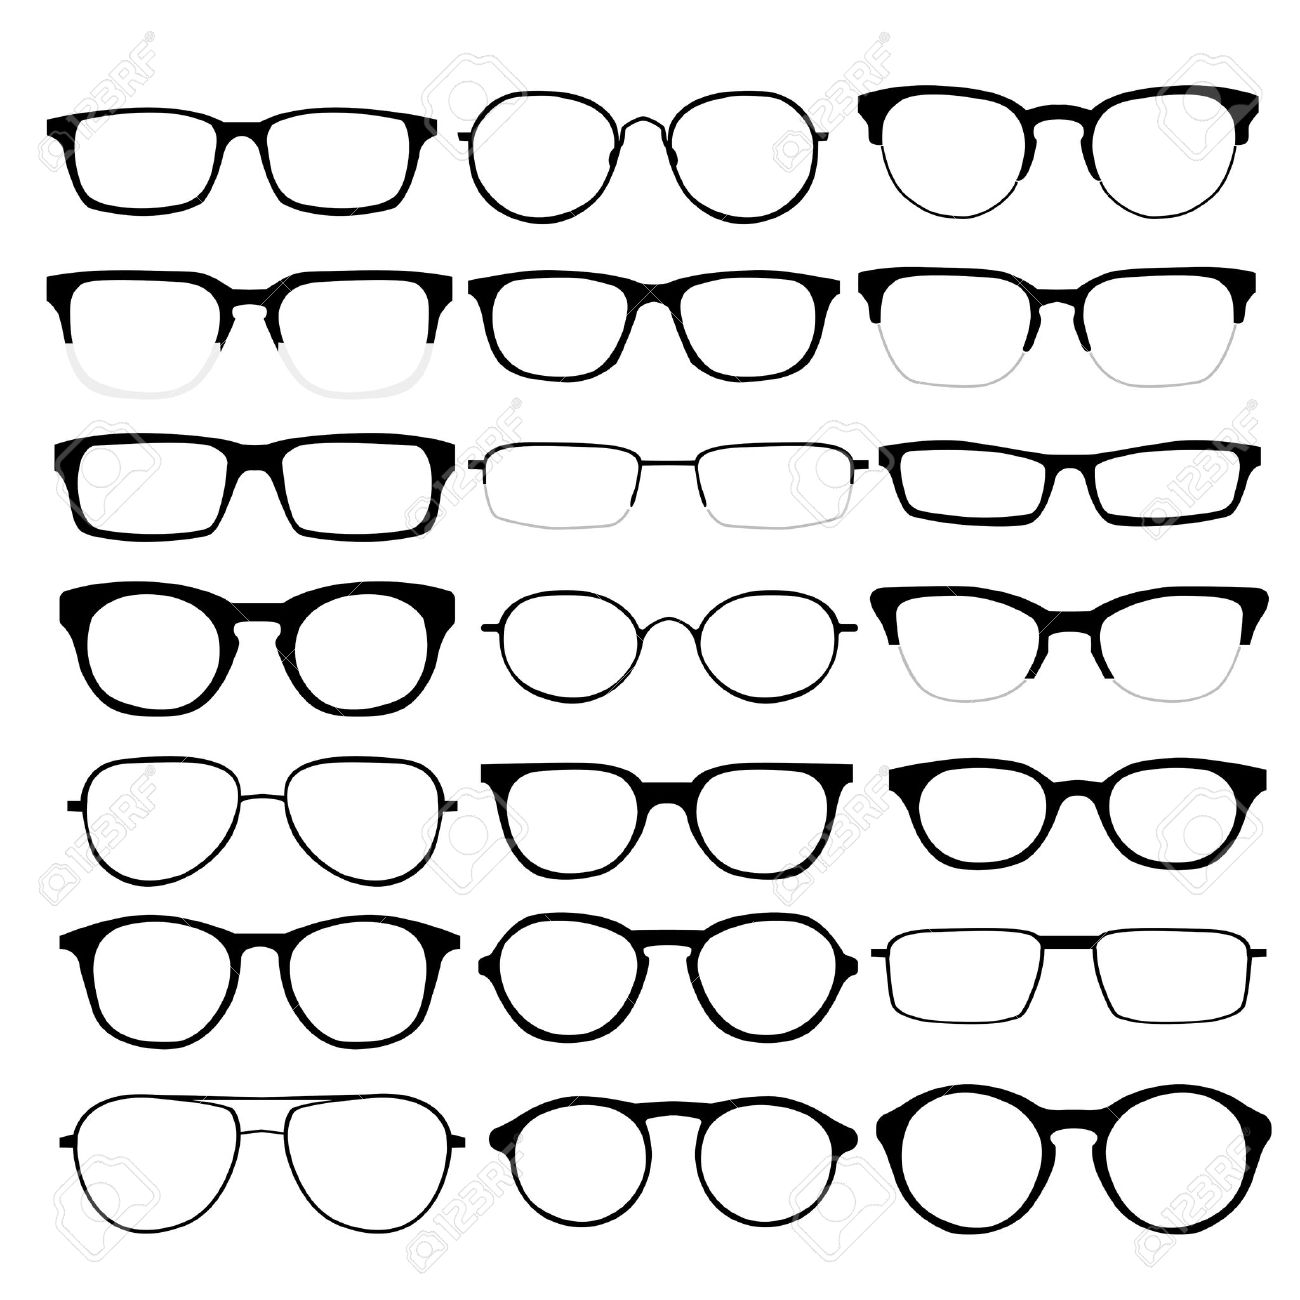 set of different glasses on white background. - 42720442